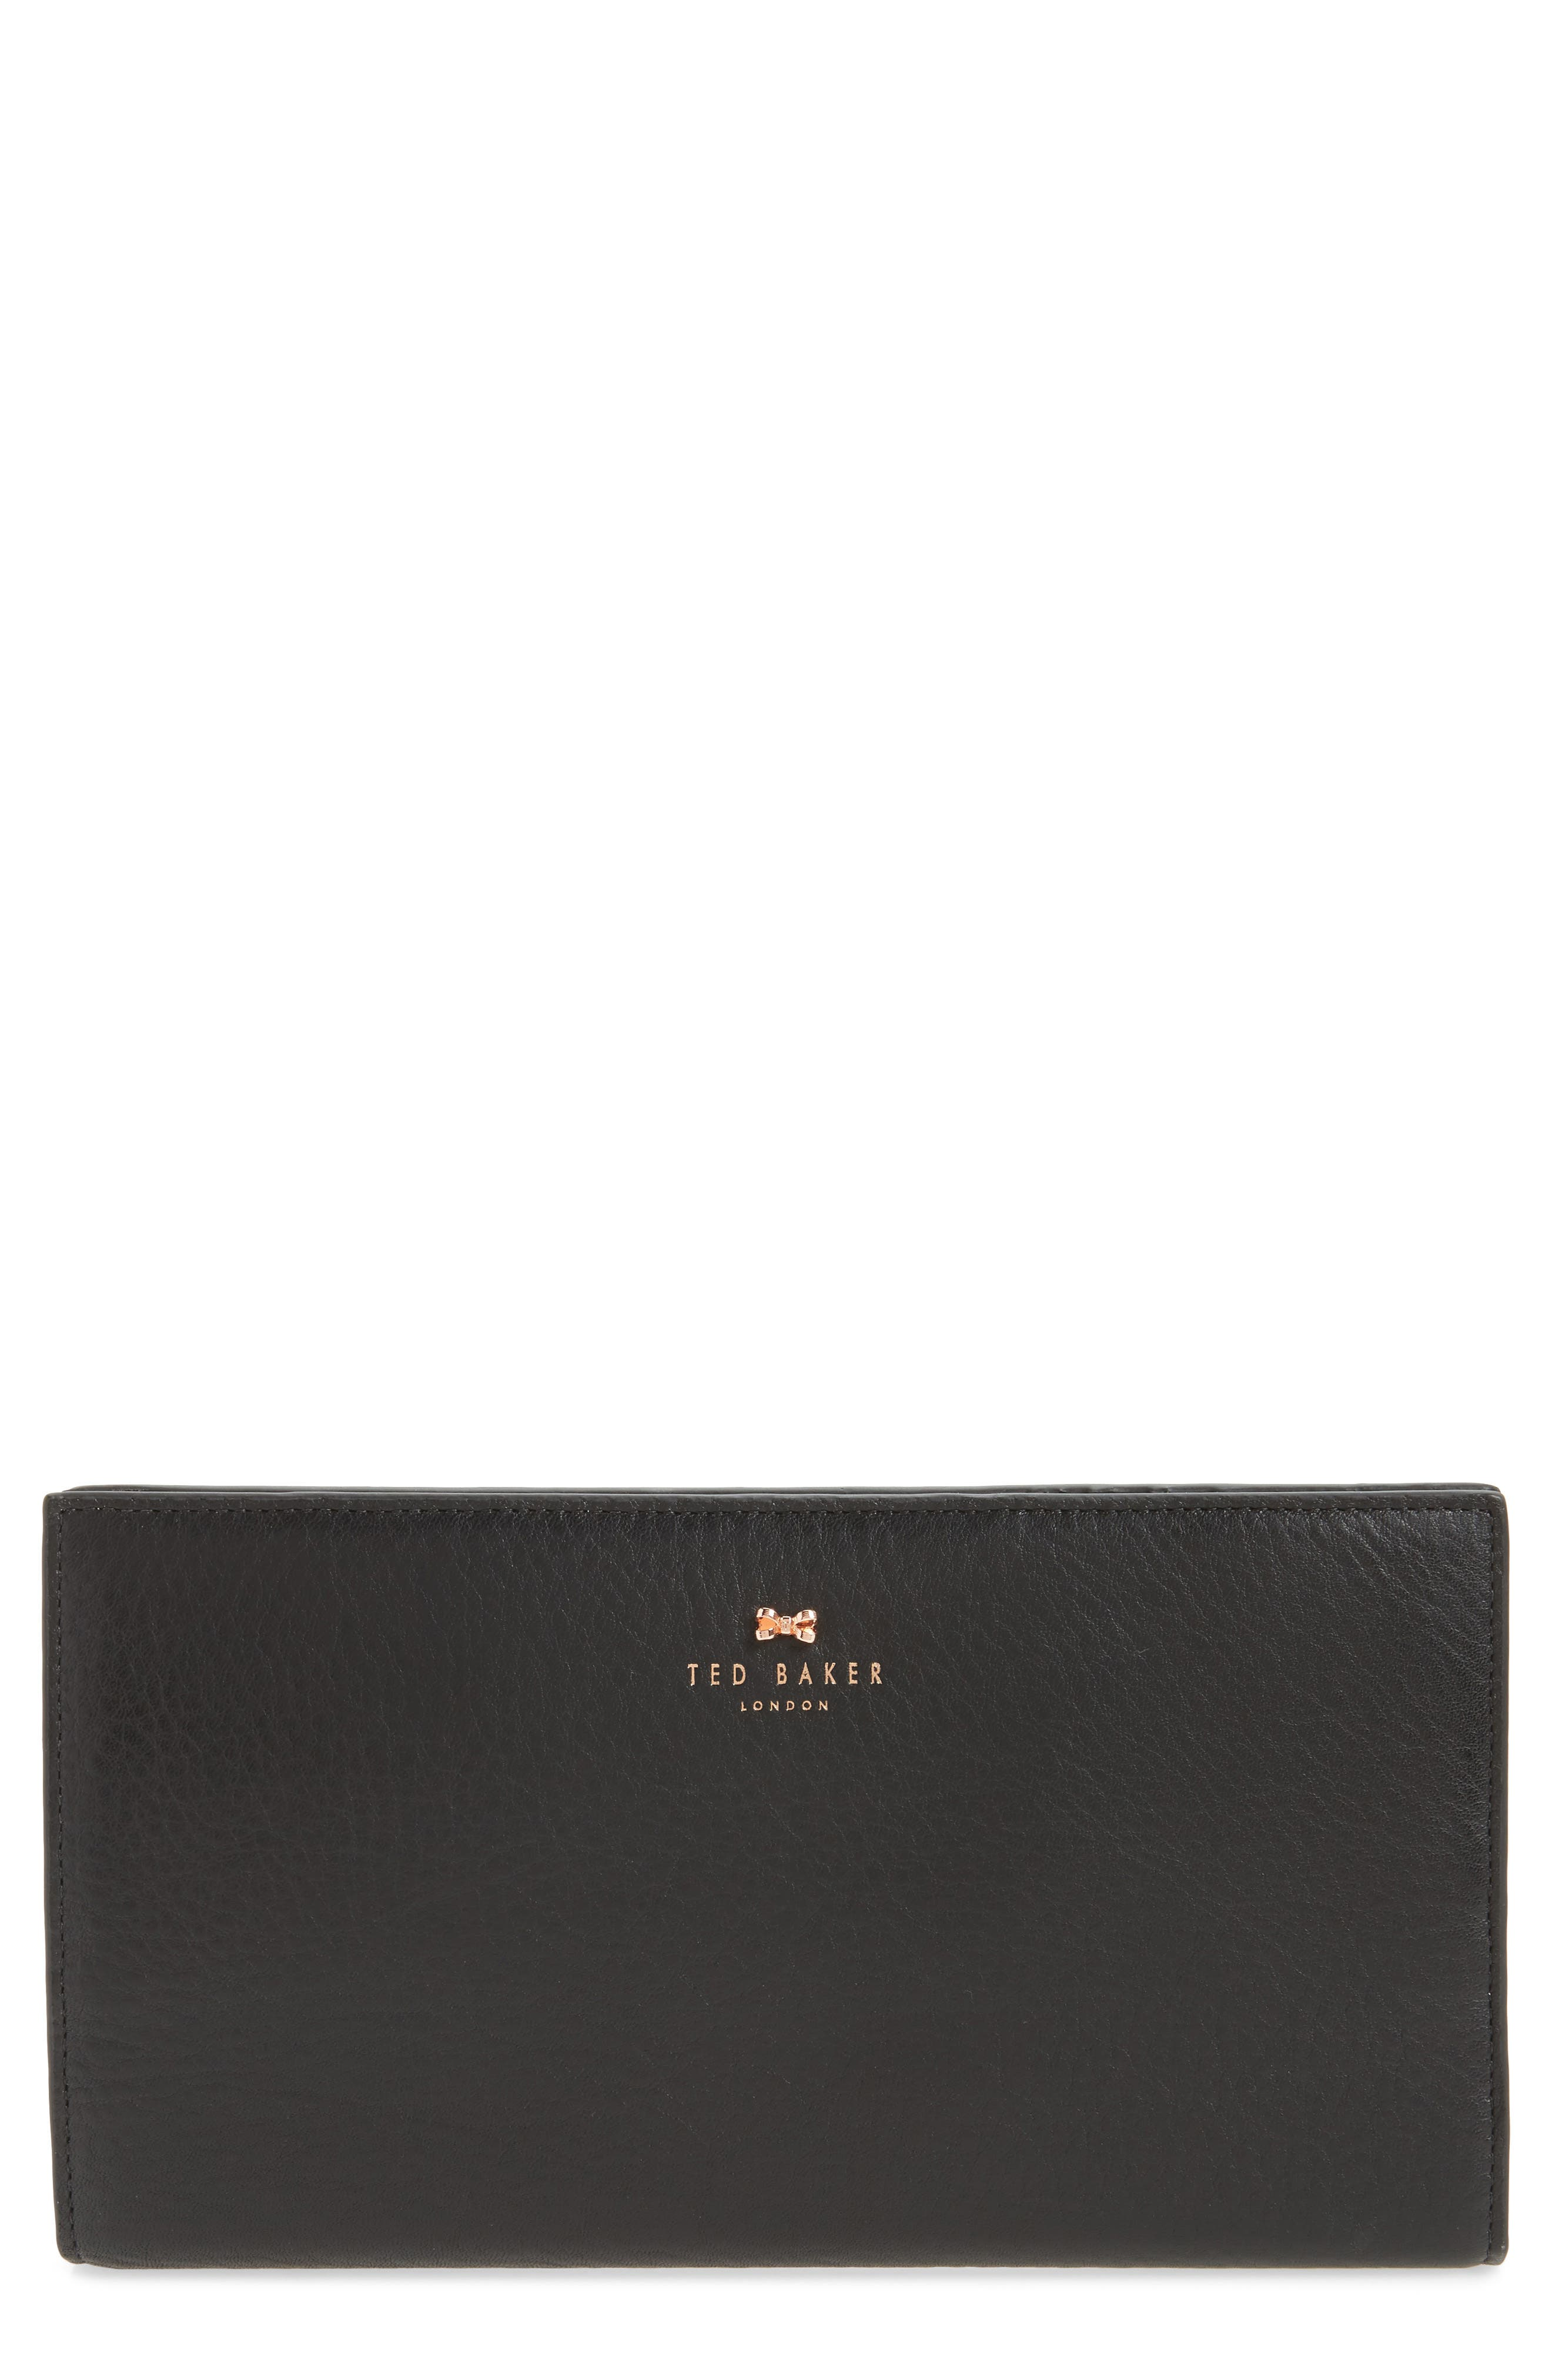 Dolle Leather Travel Wallet,                         Main,                         color, 001